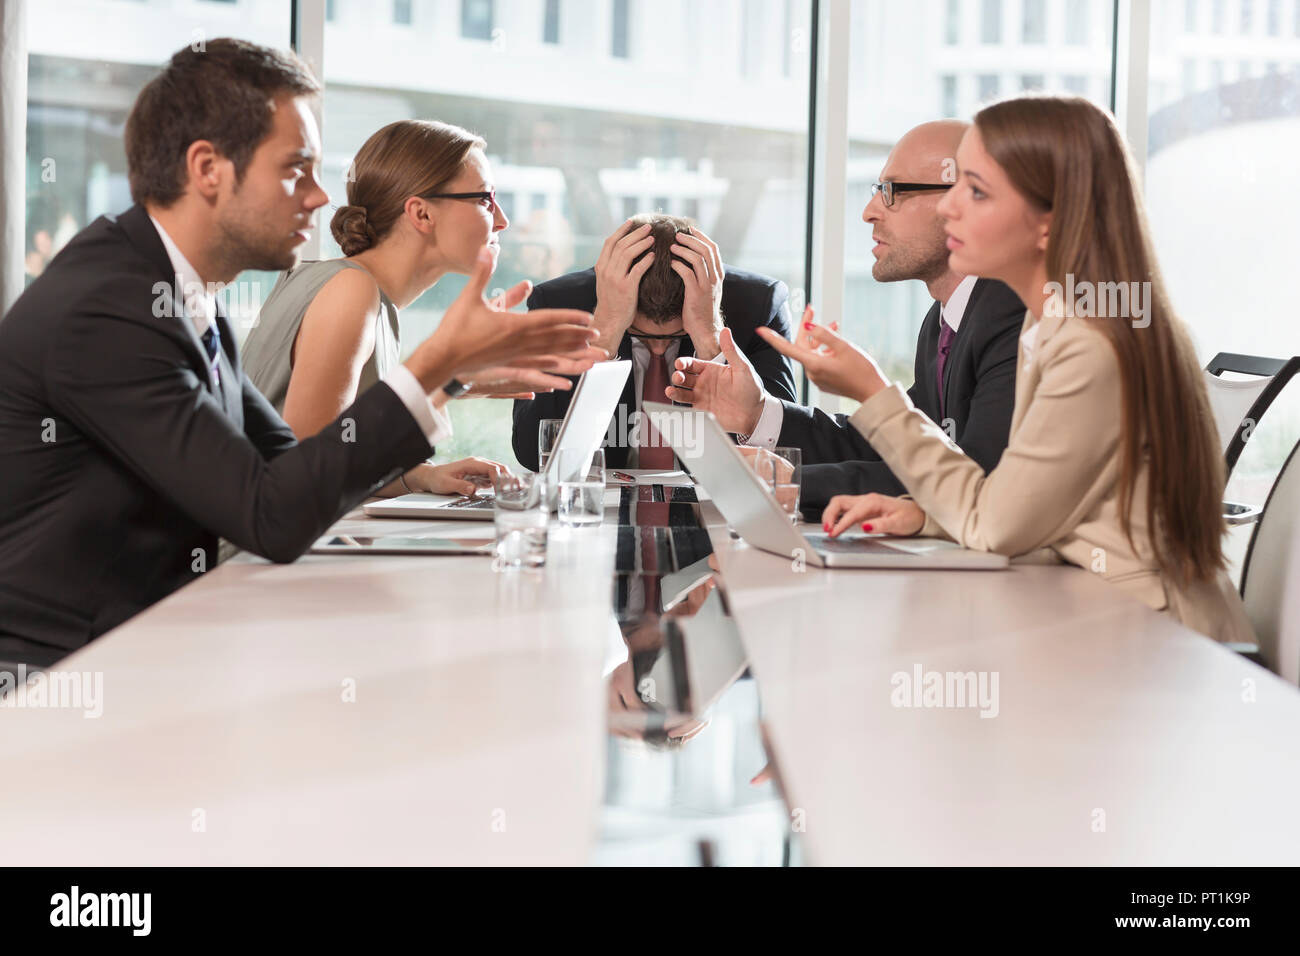 Five business people having an argument - Stock Image